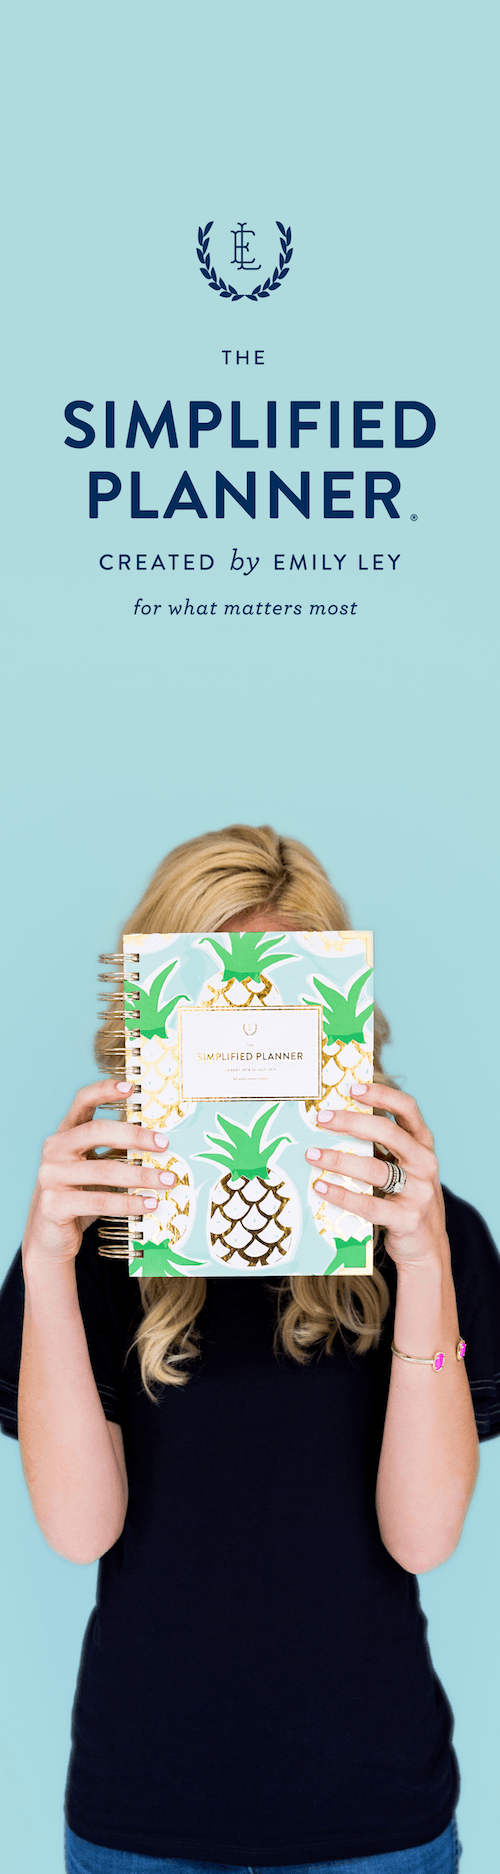 Simplified, Emily Ley, Simplified Planner